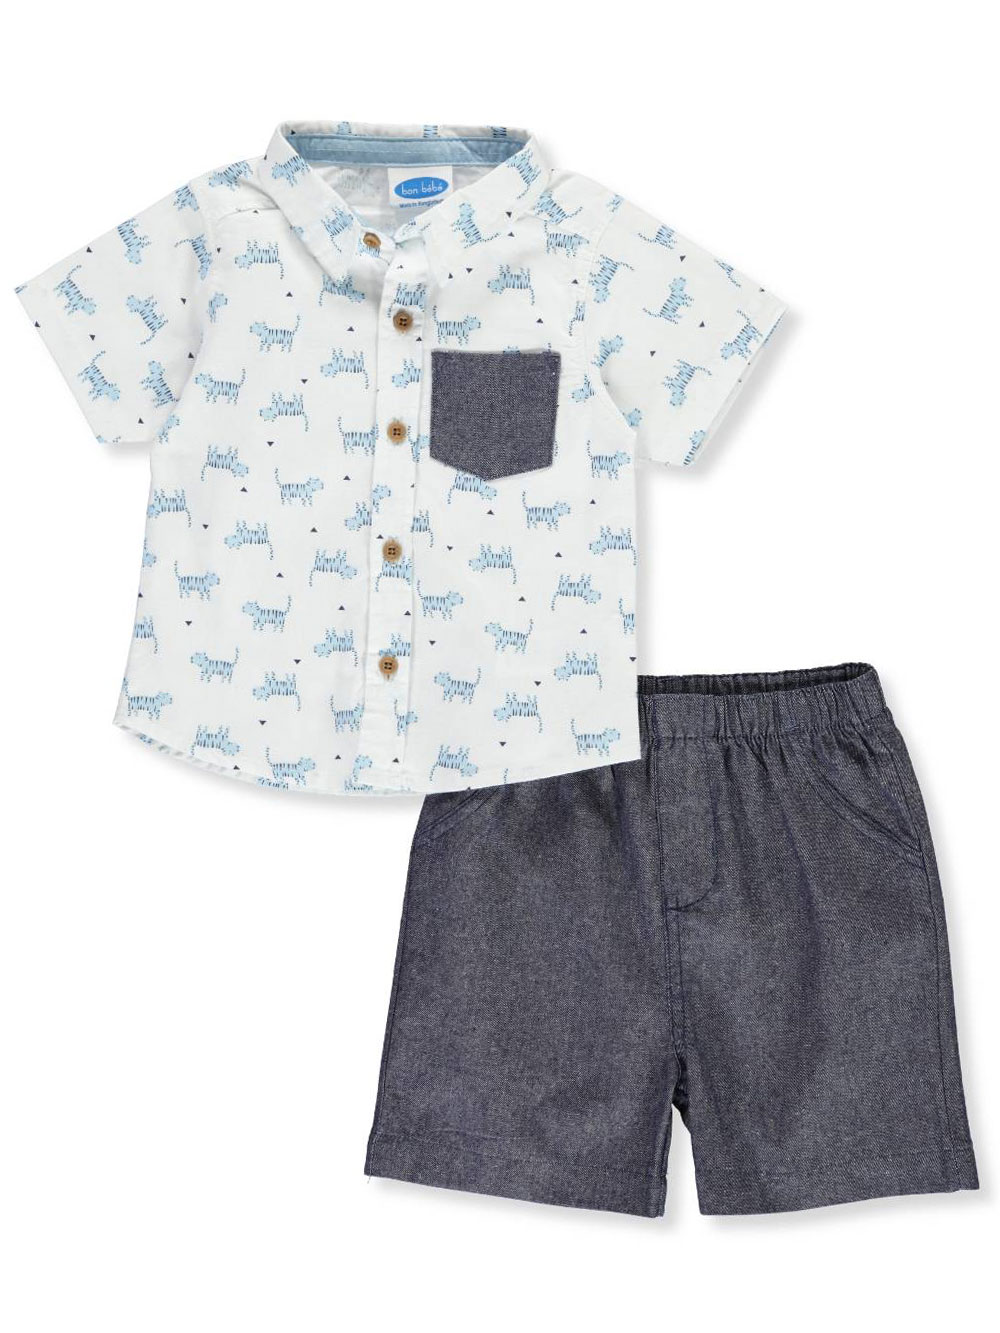 7280feccb Bon Bebe Baby Boys  2-Piece Shorts Set Outfit